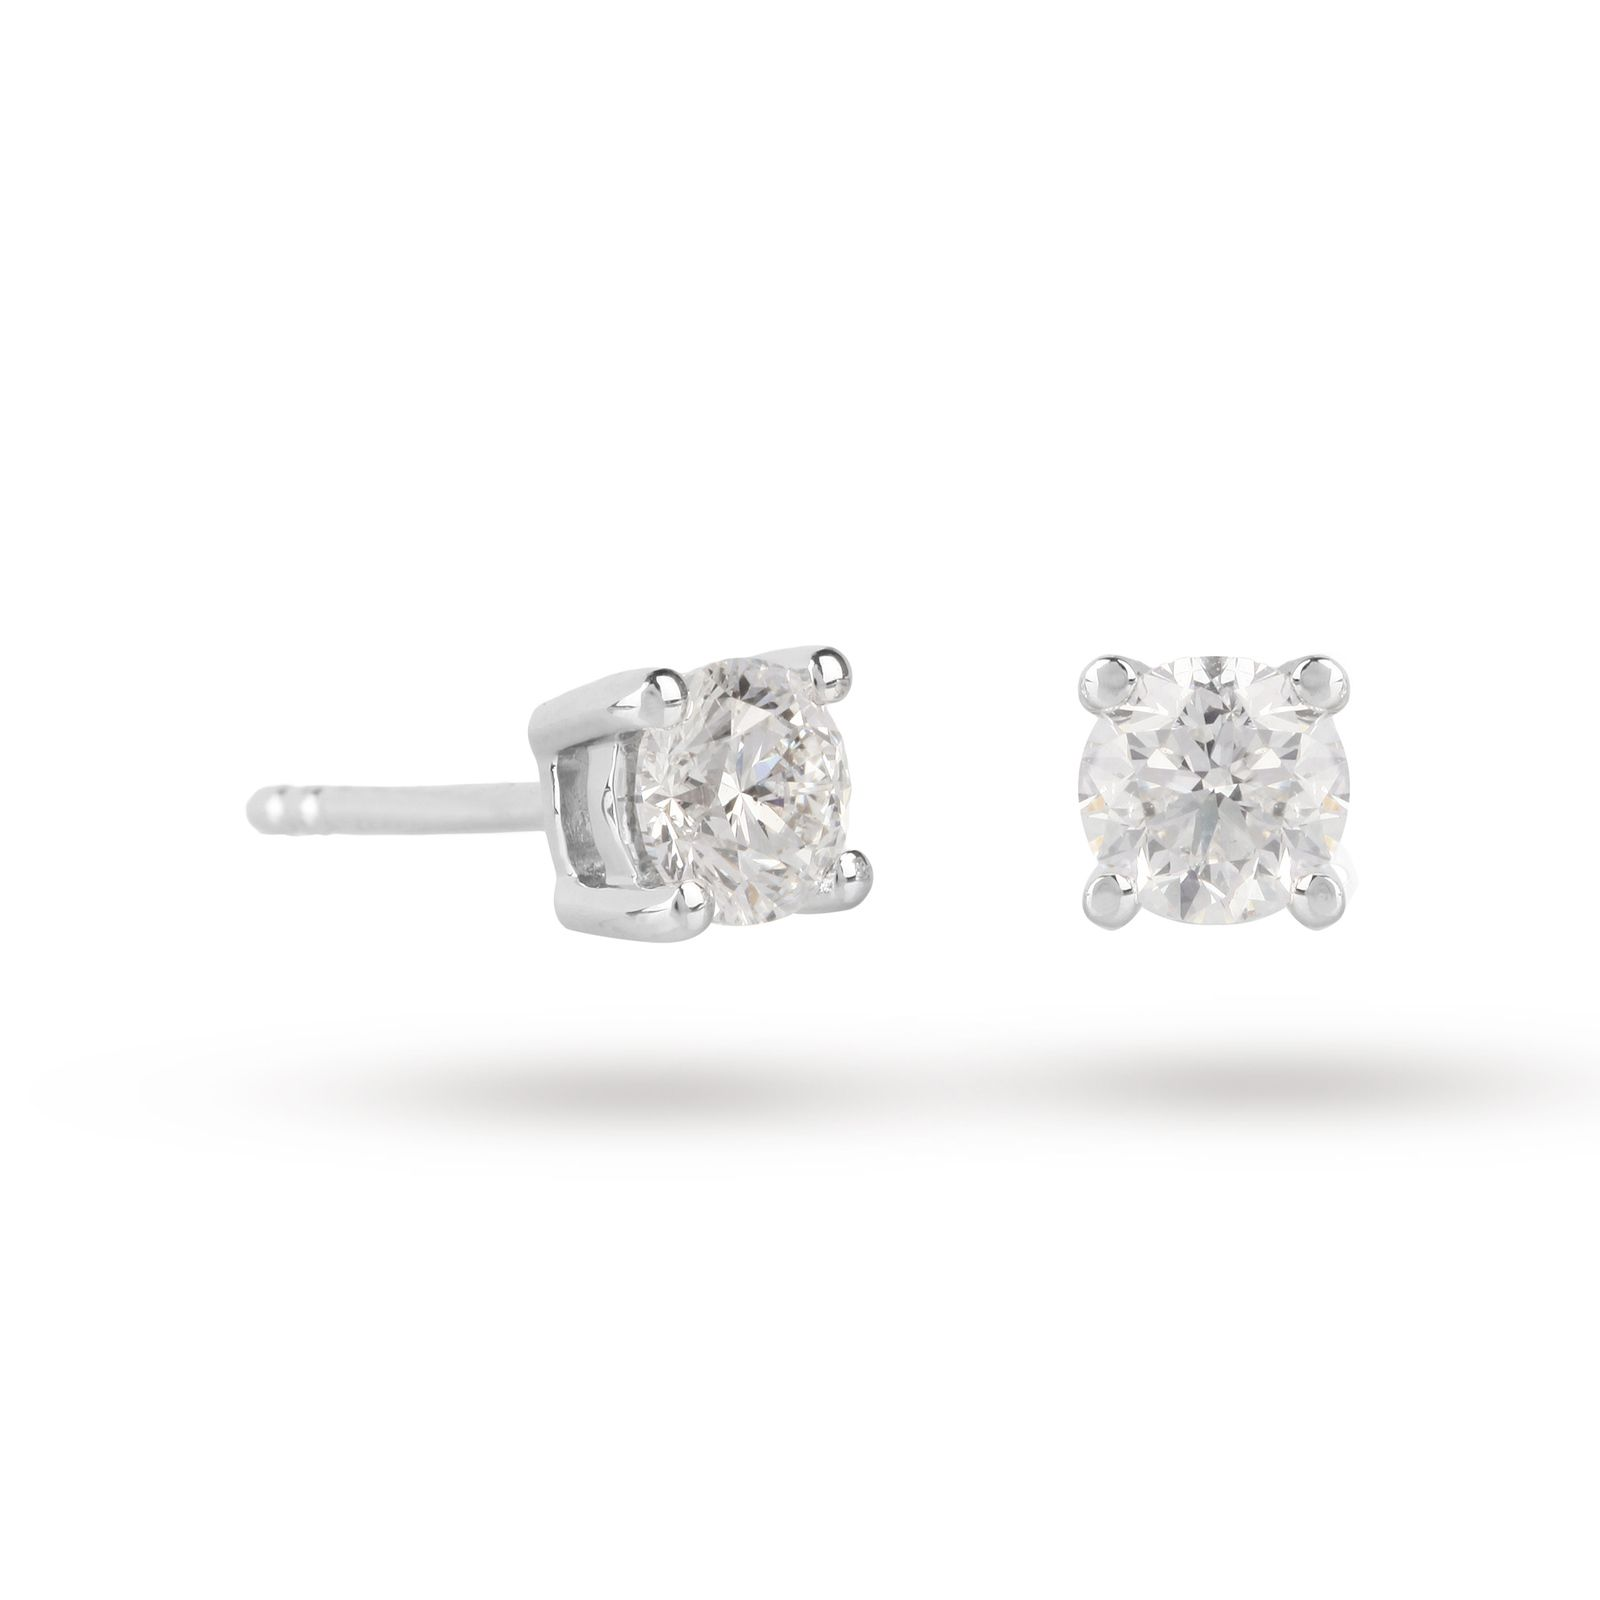 18ct White Gold 1.00ct Brilliant Cut D Colour Diamond Earrings | Earrings |  Jewellery |